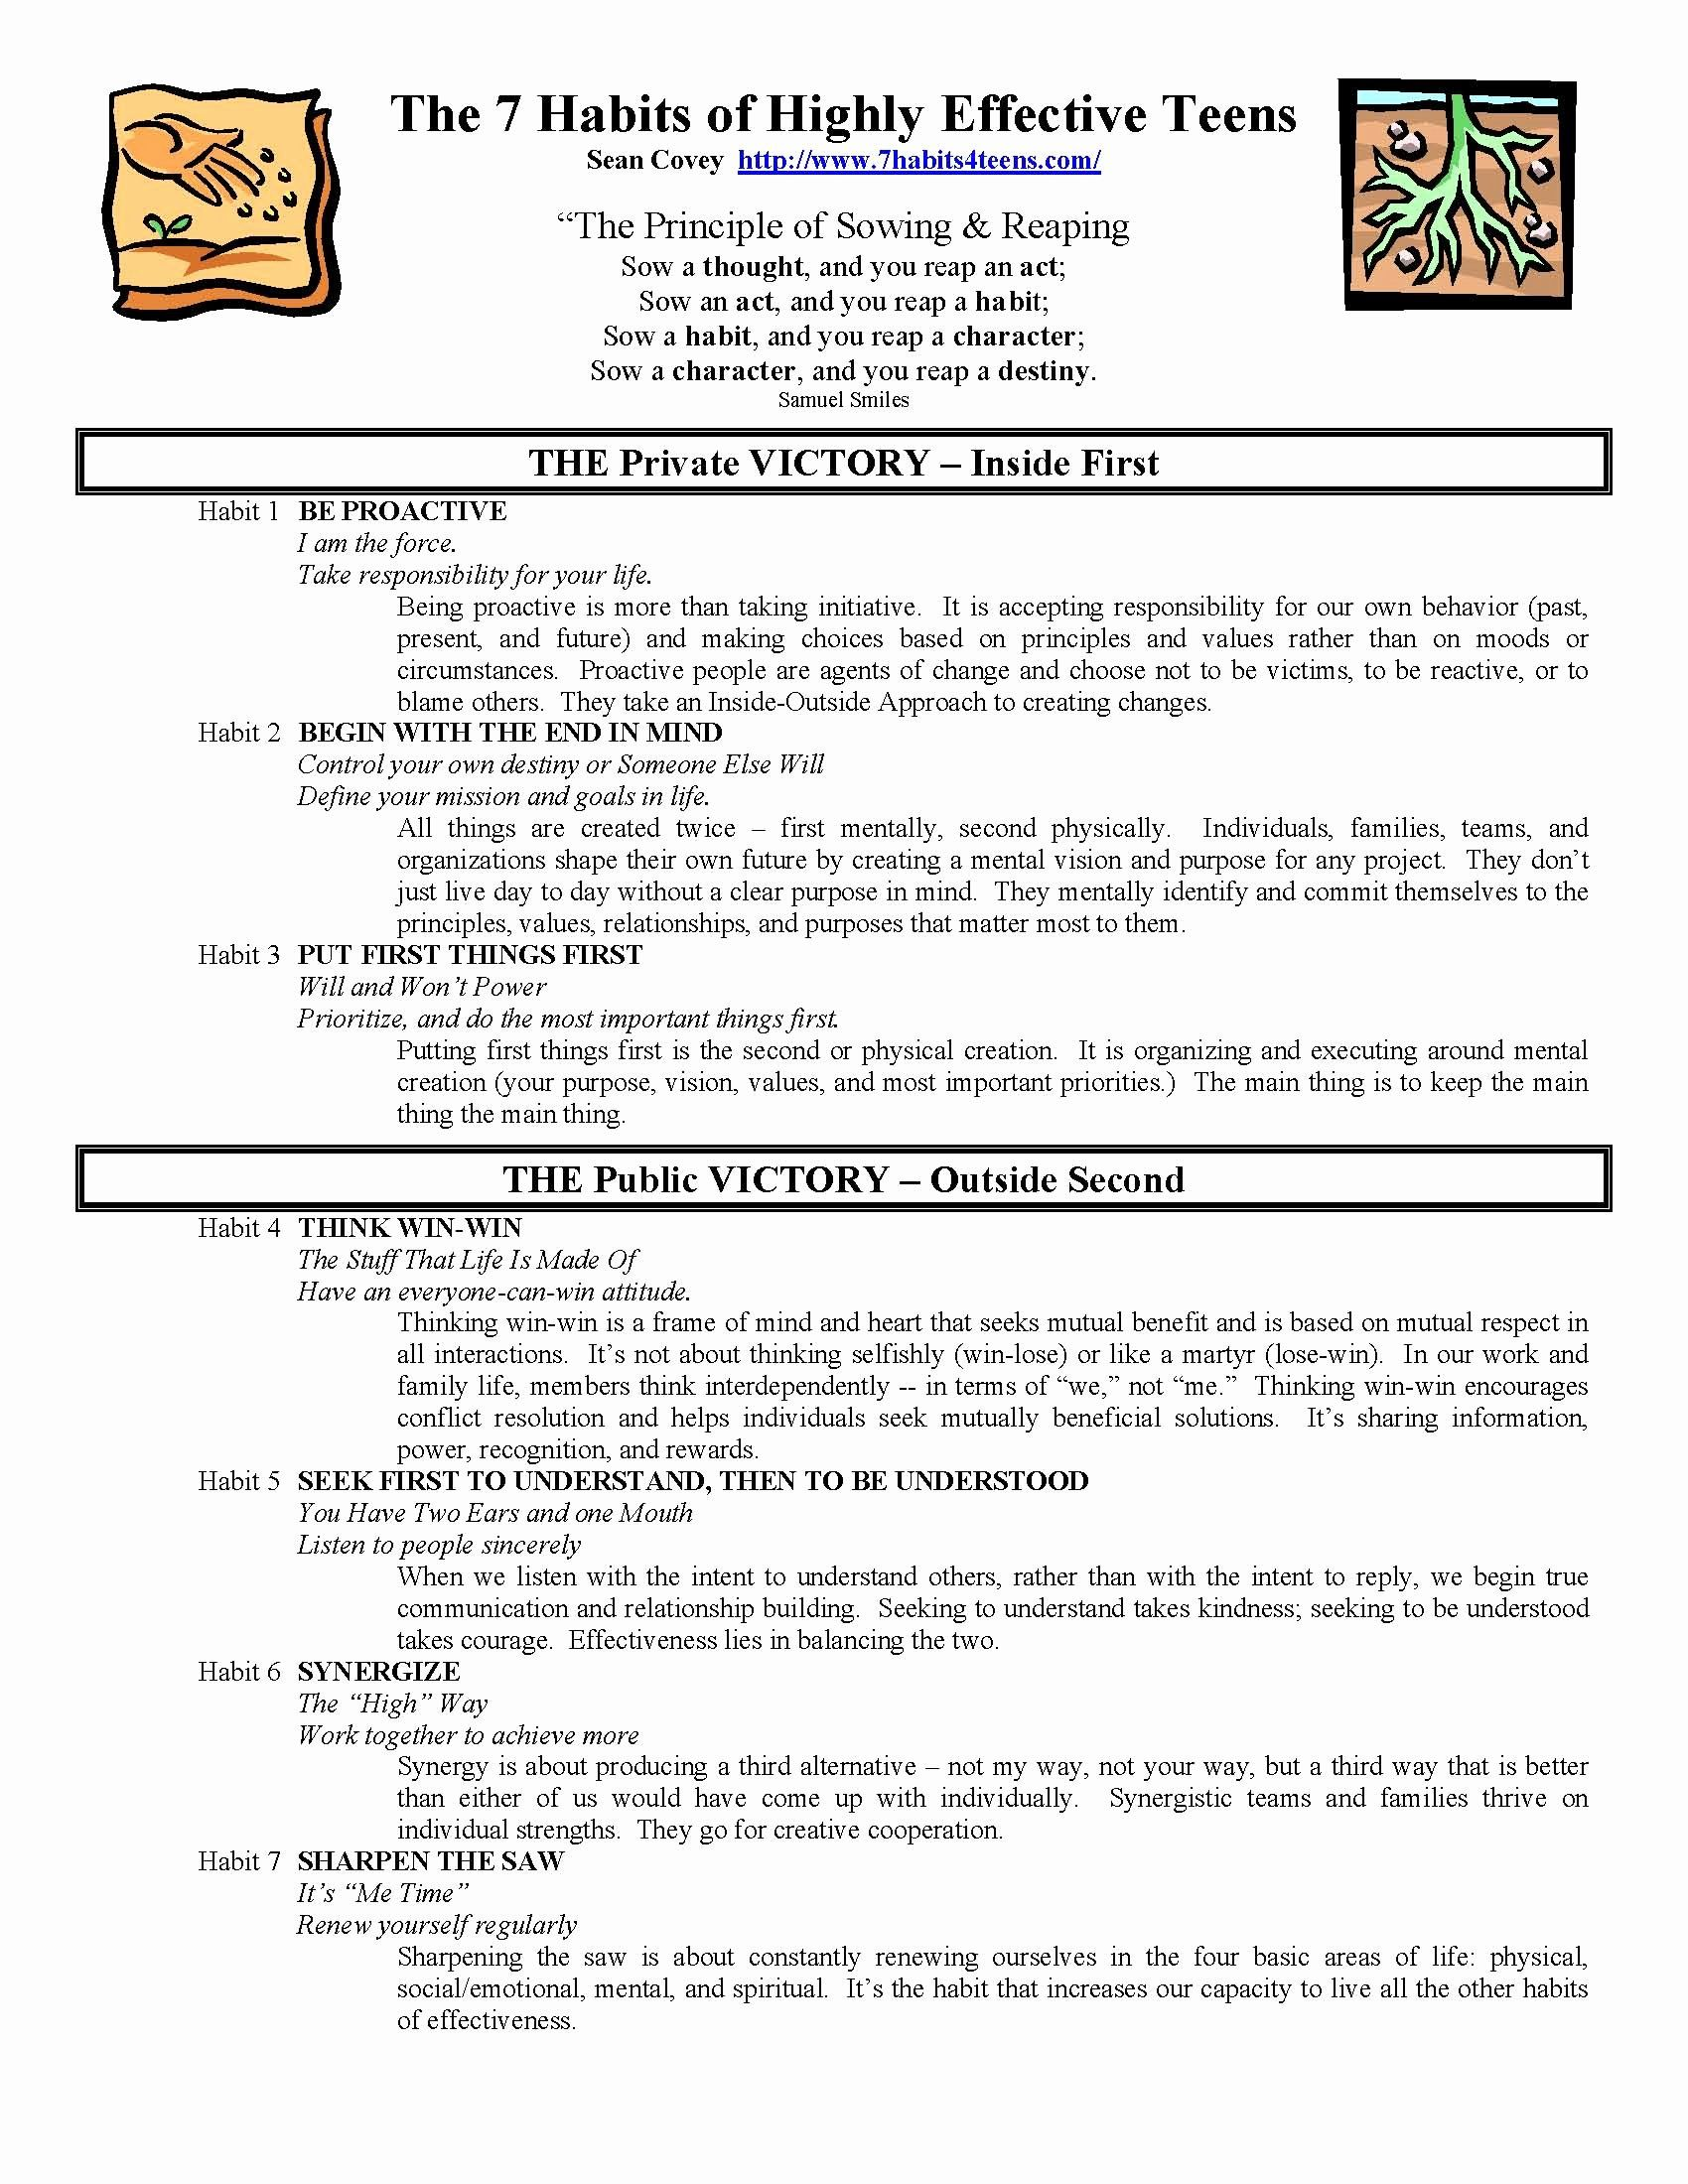 50 7 Habits Worksheet Pdf In 2020 With Images School